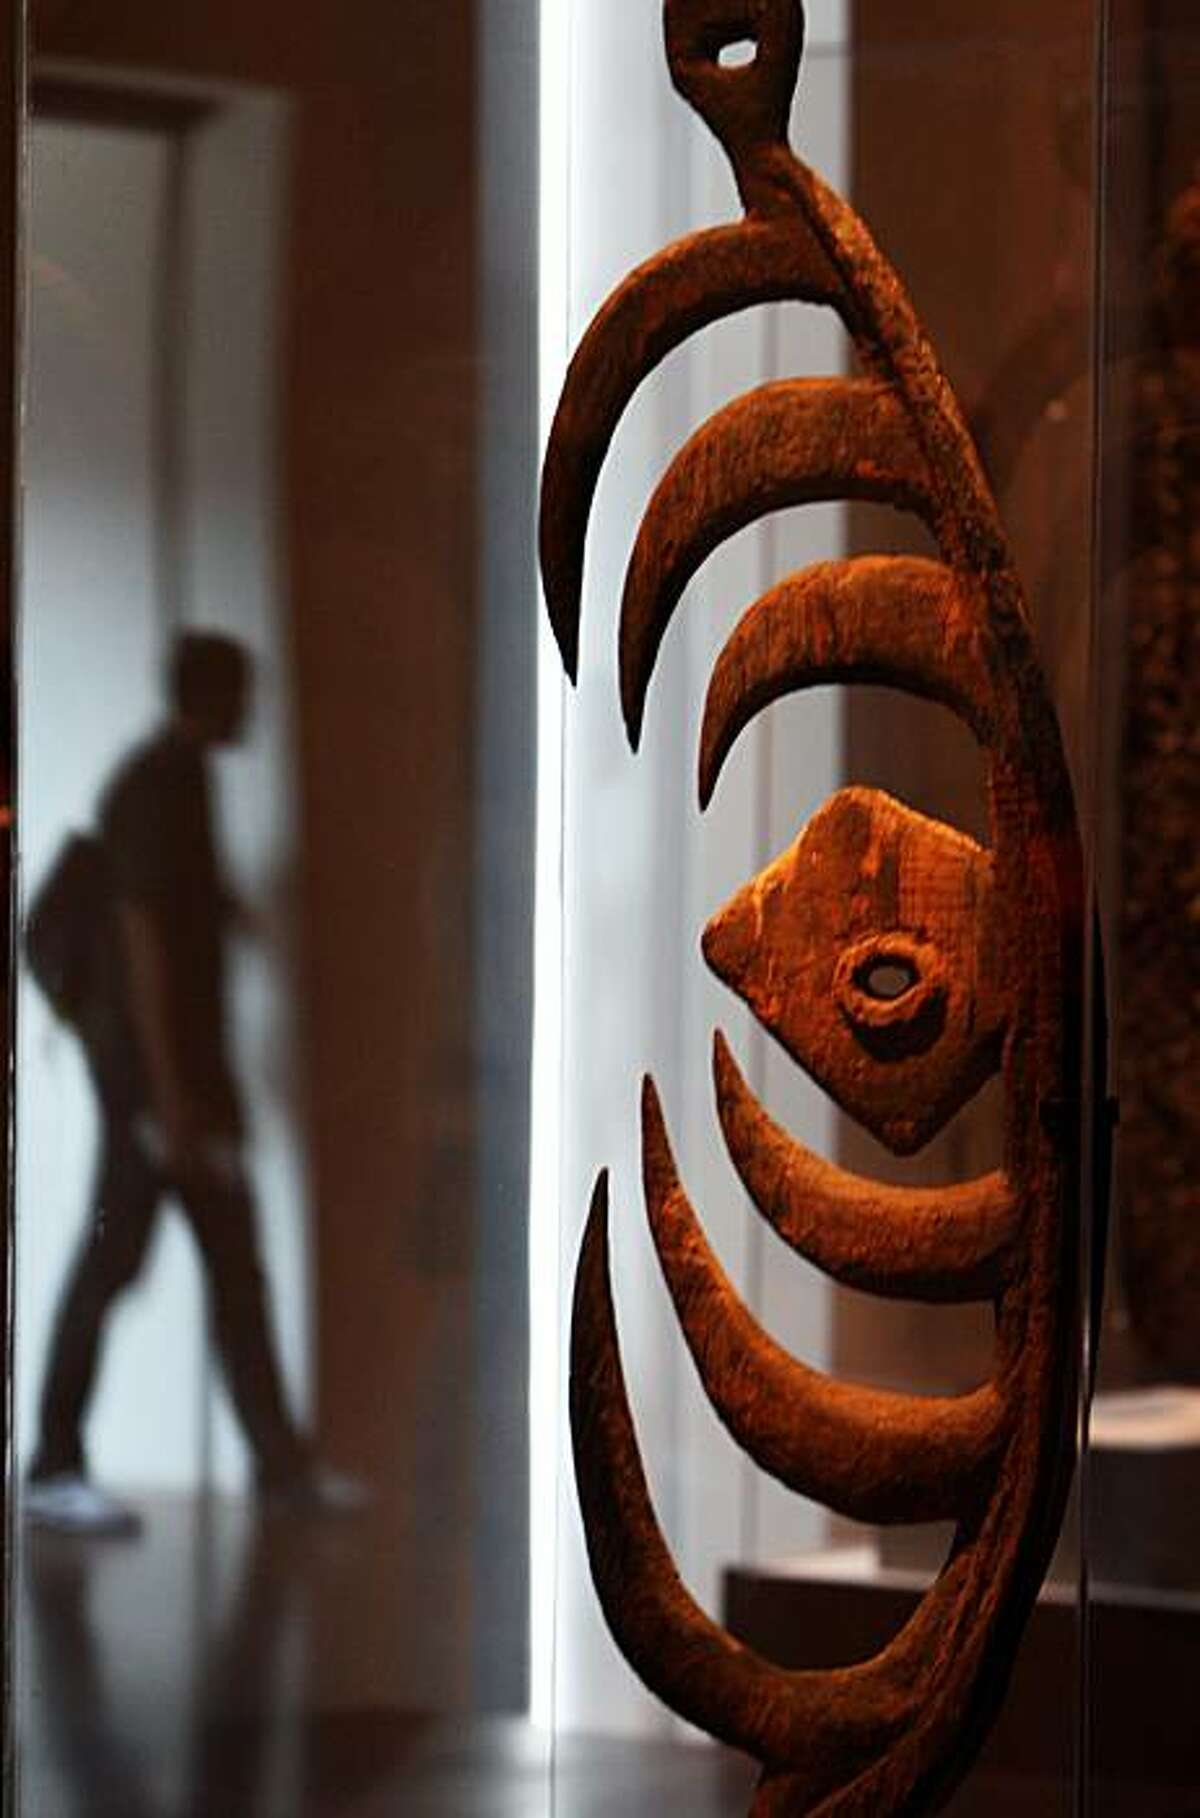 A visitor to the de Young Museum is reflected off the case housing a Cult Object, made by Bahinemo People from the Hunstein Mountains dated 18th-19th century. John Friede - a de Young trustee, donated the Jolika Collection of New Guinean art to the de Young Museum. The collection is now embroiled in an ownership dispute because a week after he gave the collection to the museum, he signed a paper giving the collection to his siblings who want to sell it off. There may also be a dispute from Papua New Guinea who might lay claim that the pieces were improperly taken from the country. Photographed in San Francisco Friday Sept 19, 2008.